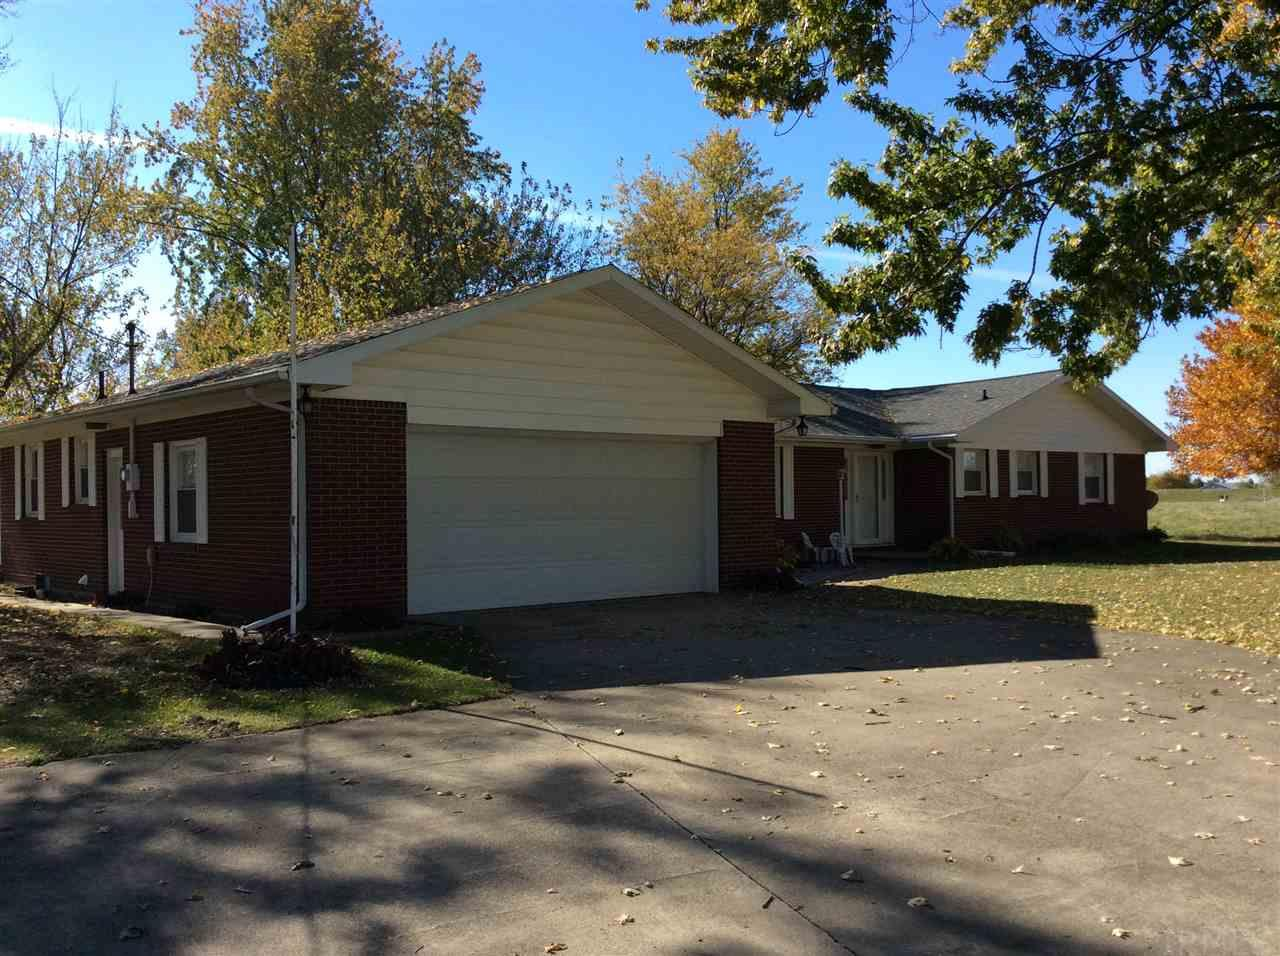 1226 W 550N, Decatur, IN 46733